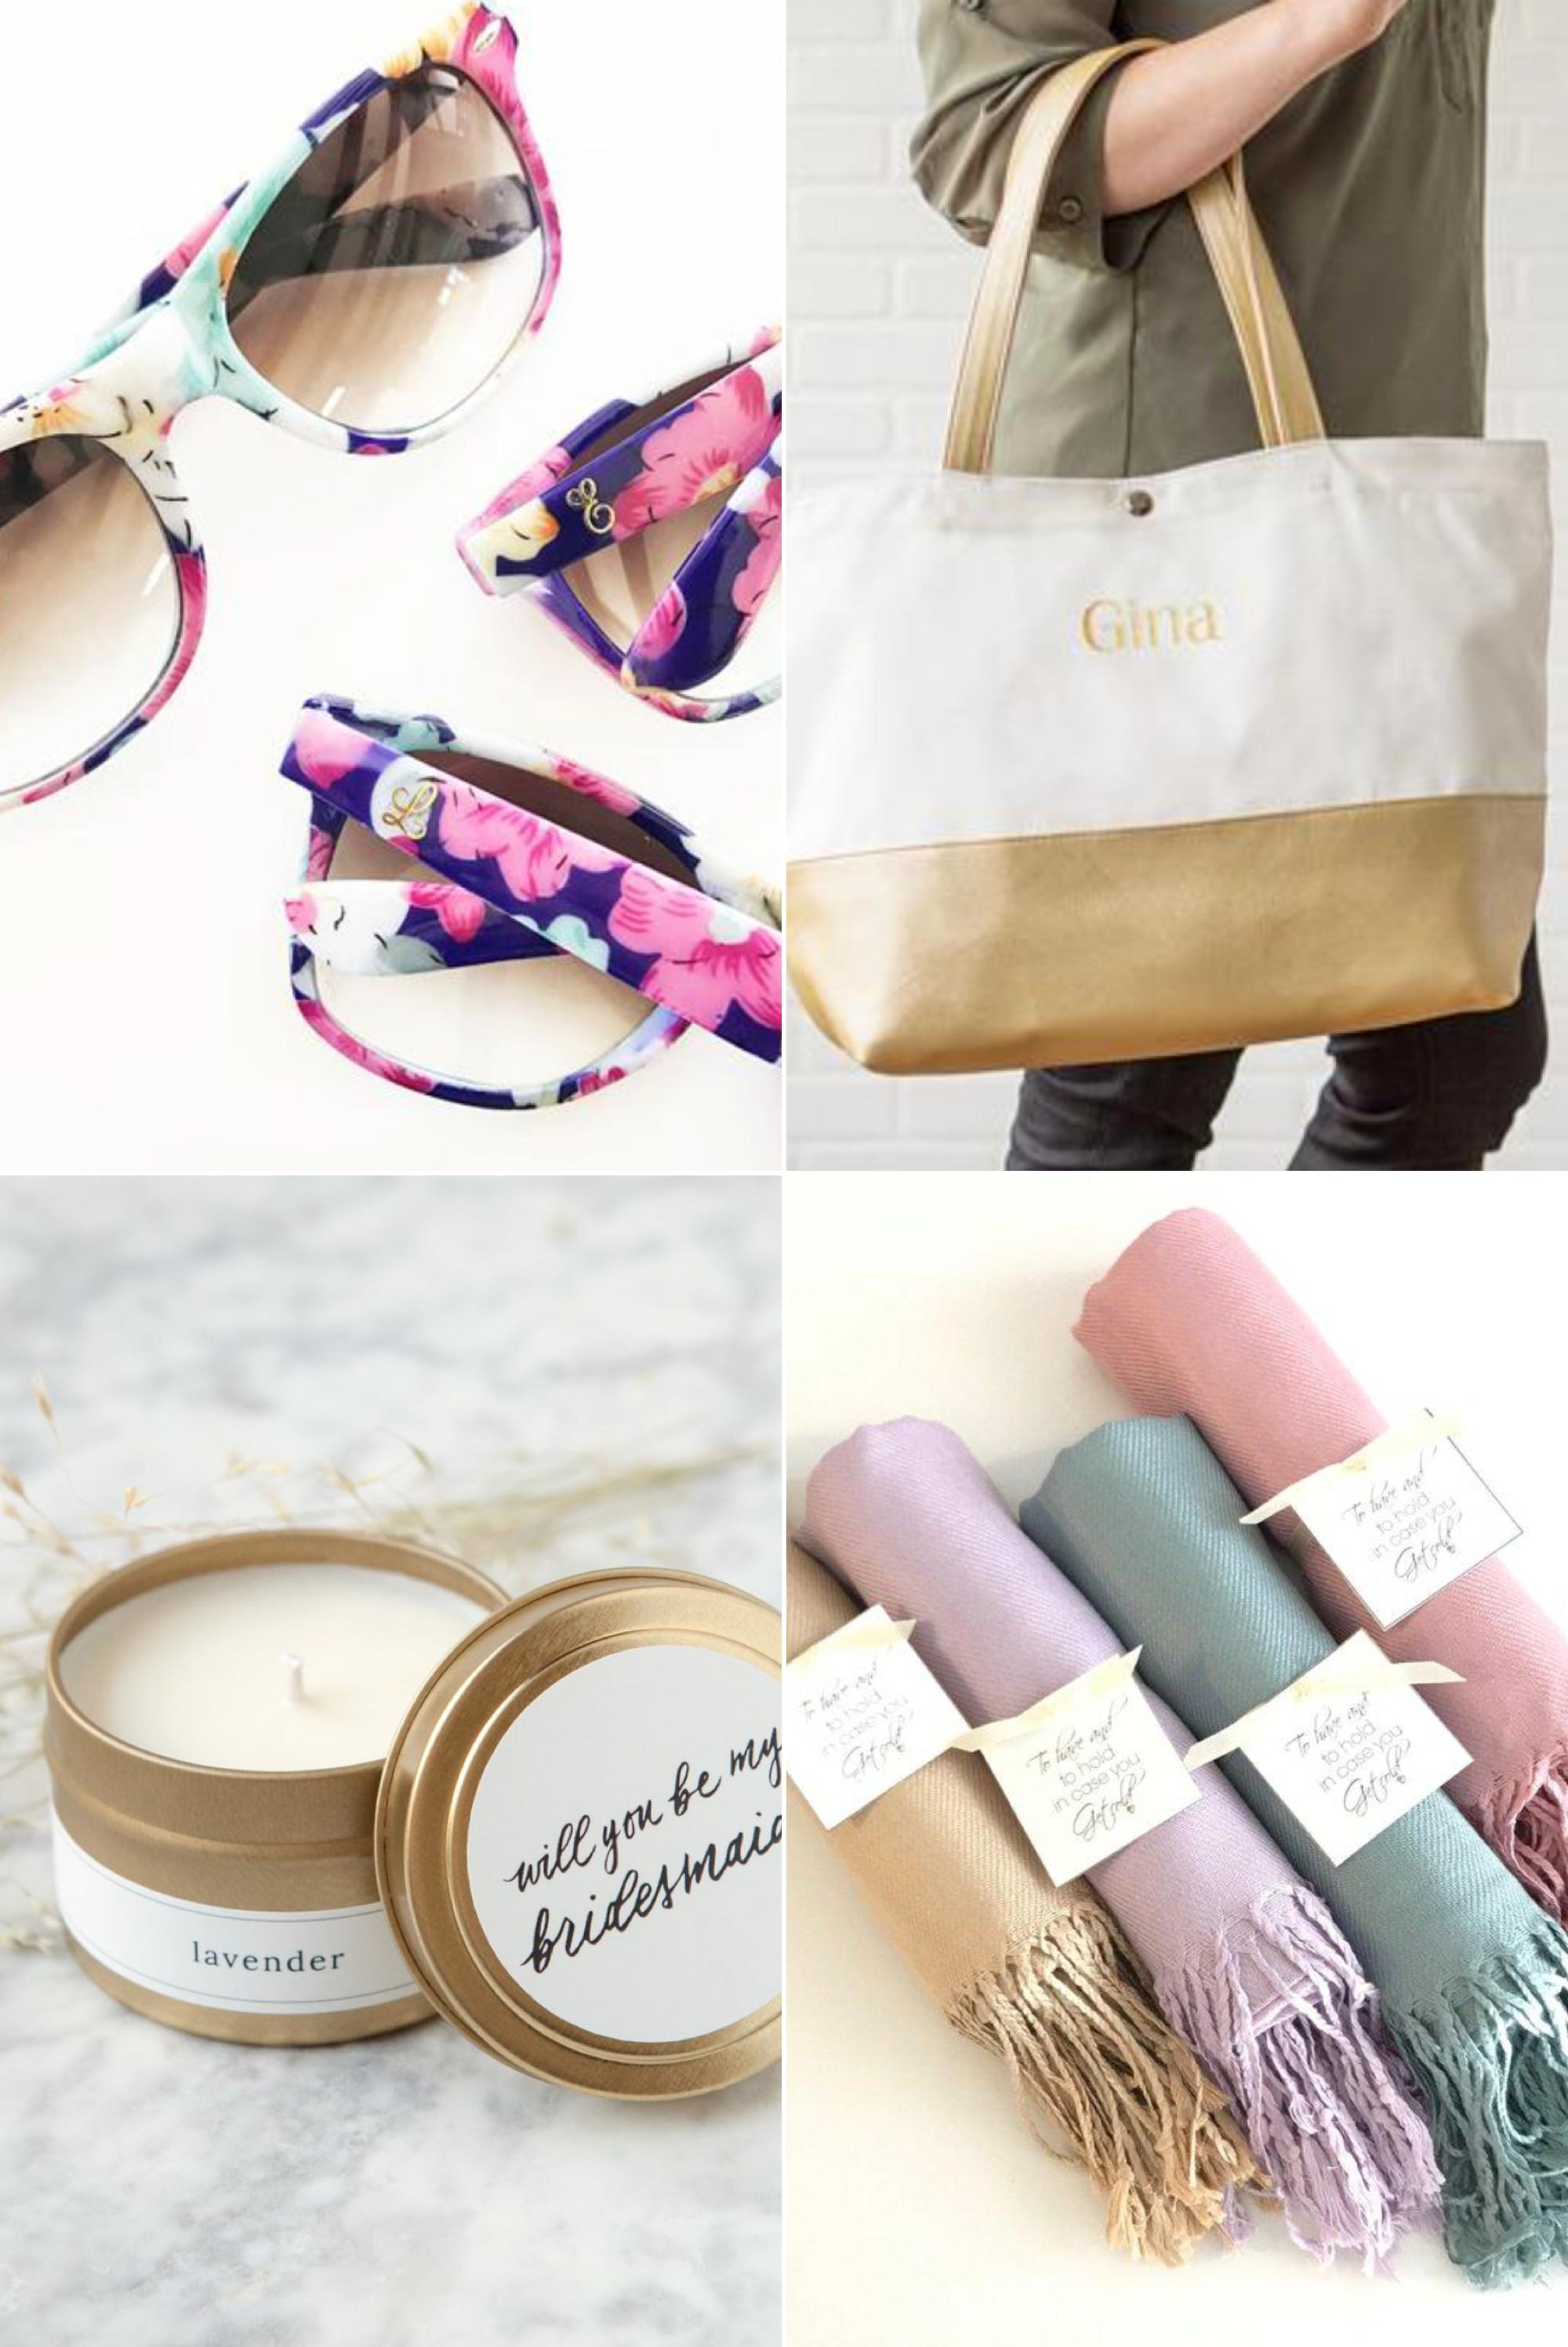 Bridesmaid gifts collage 2.jpg